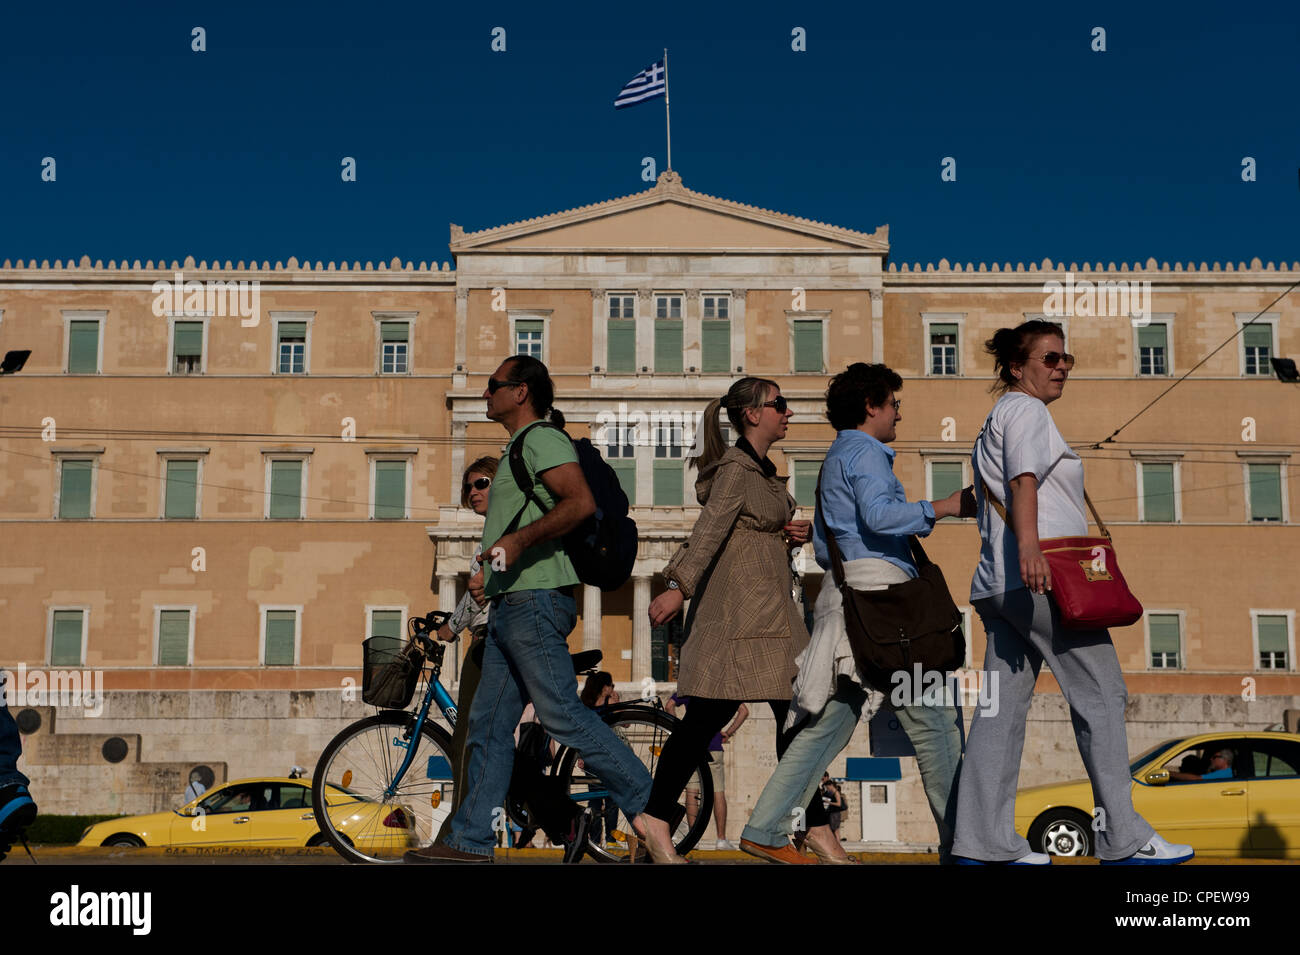 Athenians walking in front of the Greek parliament, Syntagma Sq, Athens, Greece - Stock Image